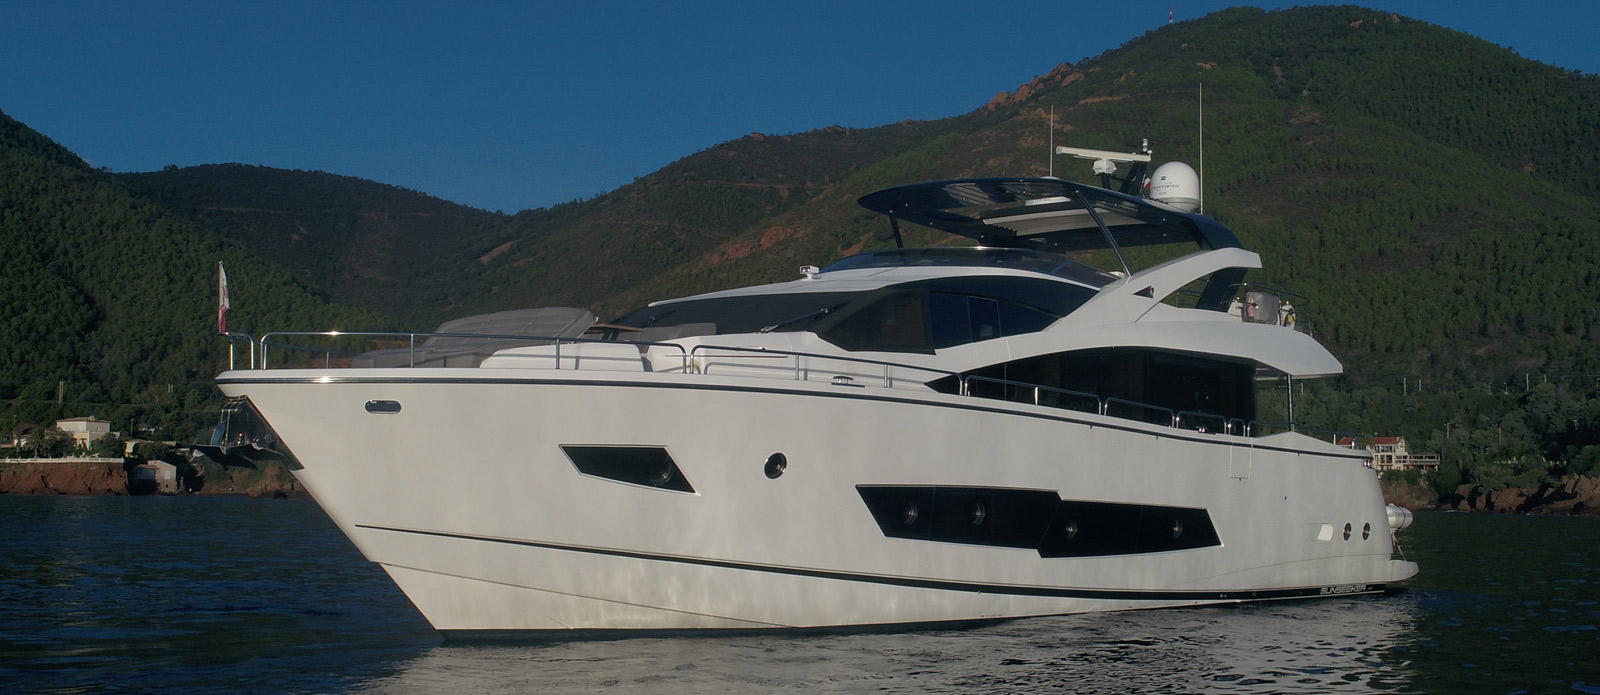 Sunseeker 86 Yacht MiBowt Bow on Side Profile